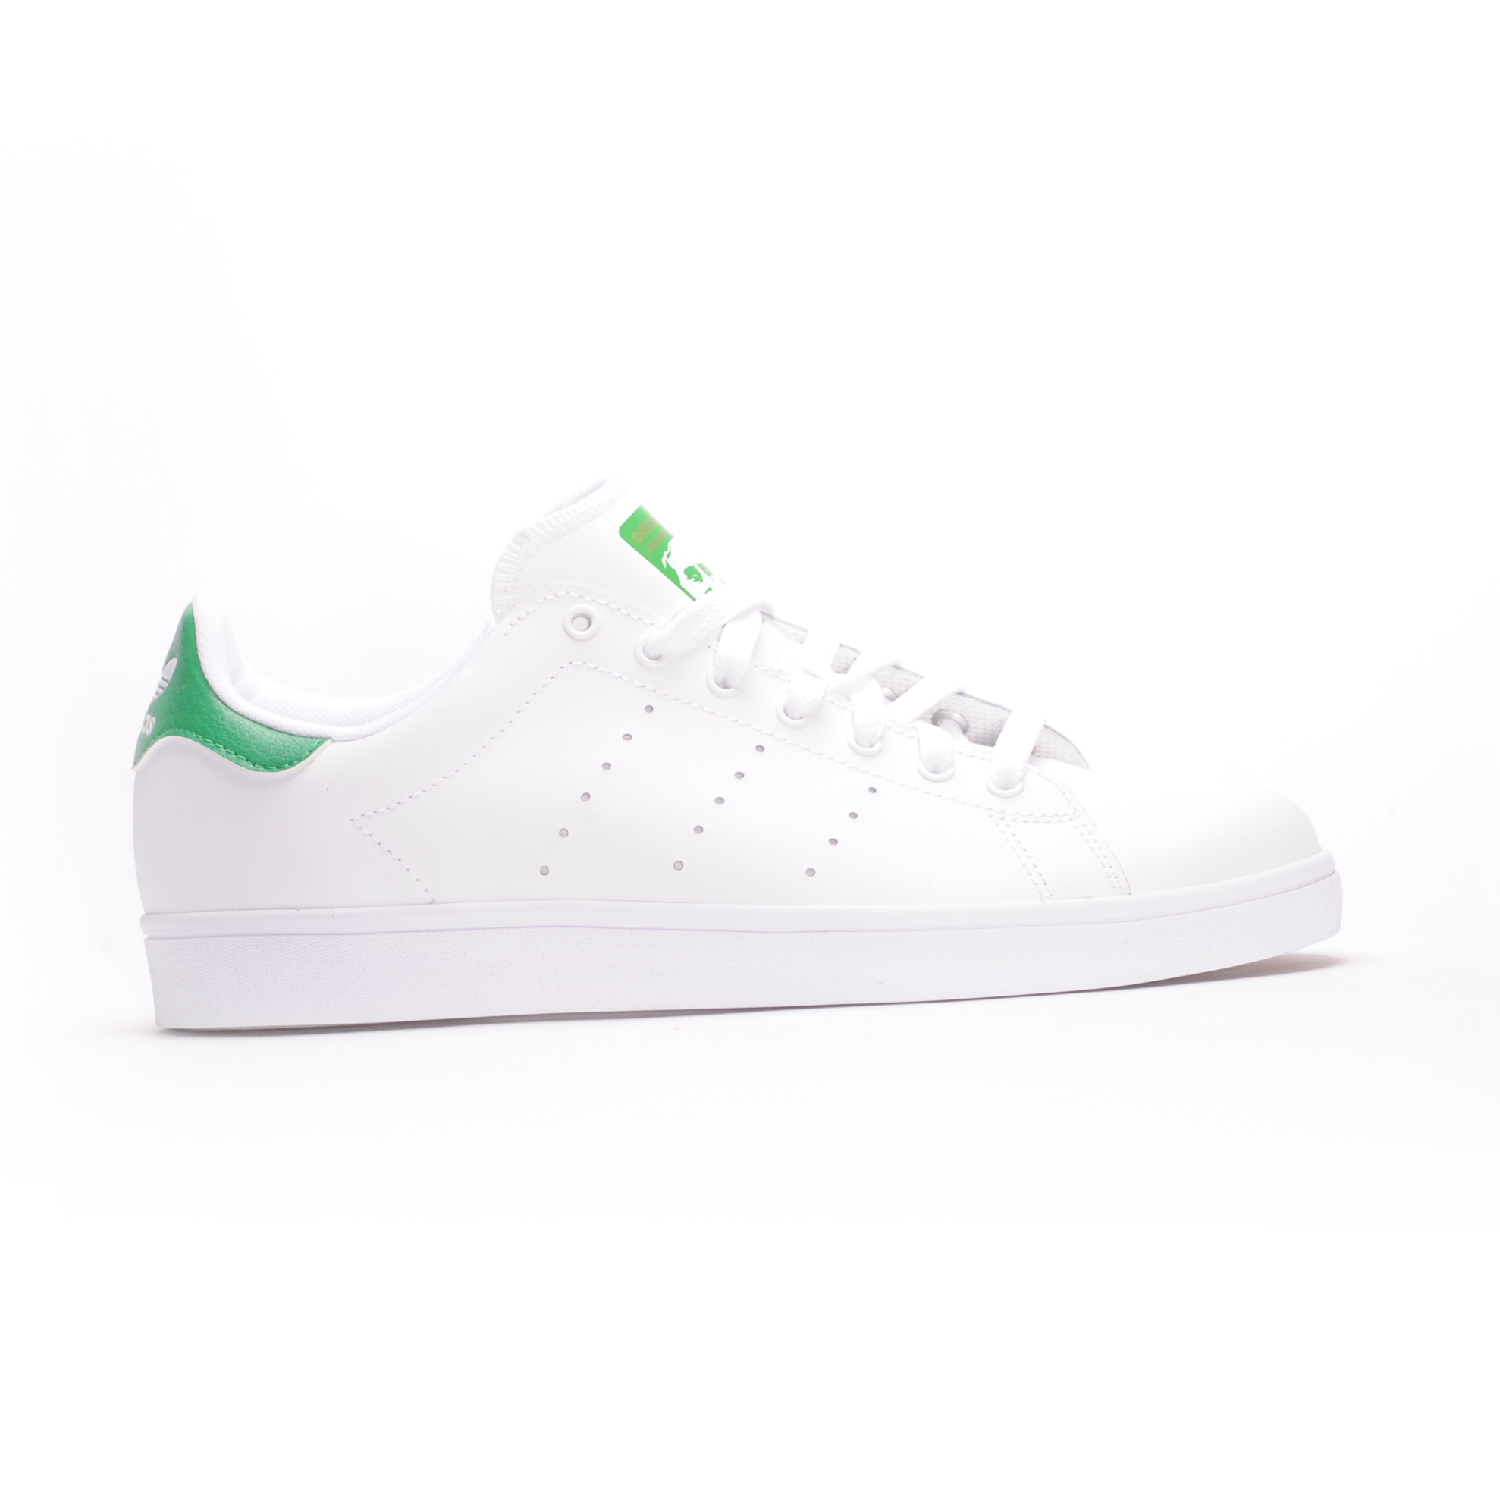 Skate shoes buying guide